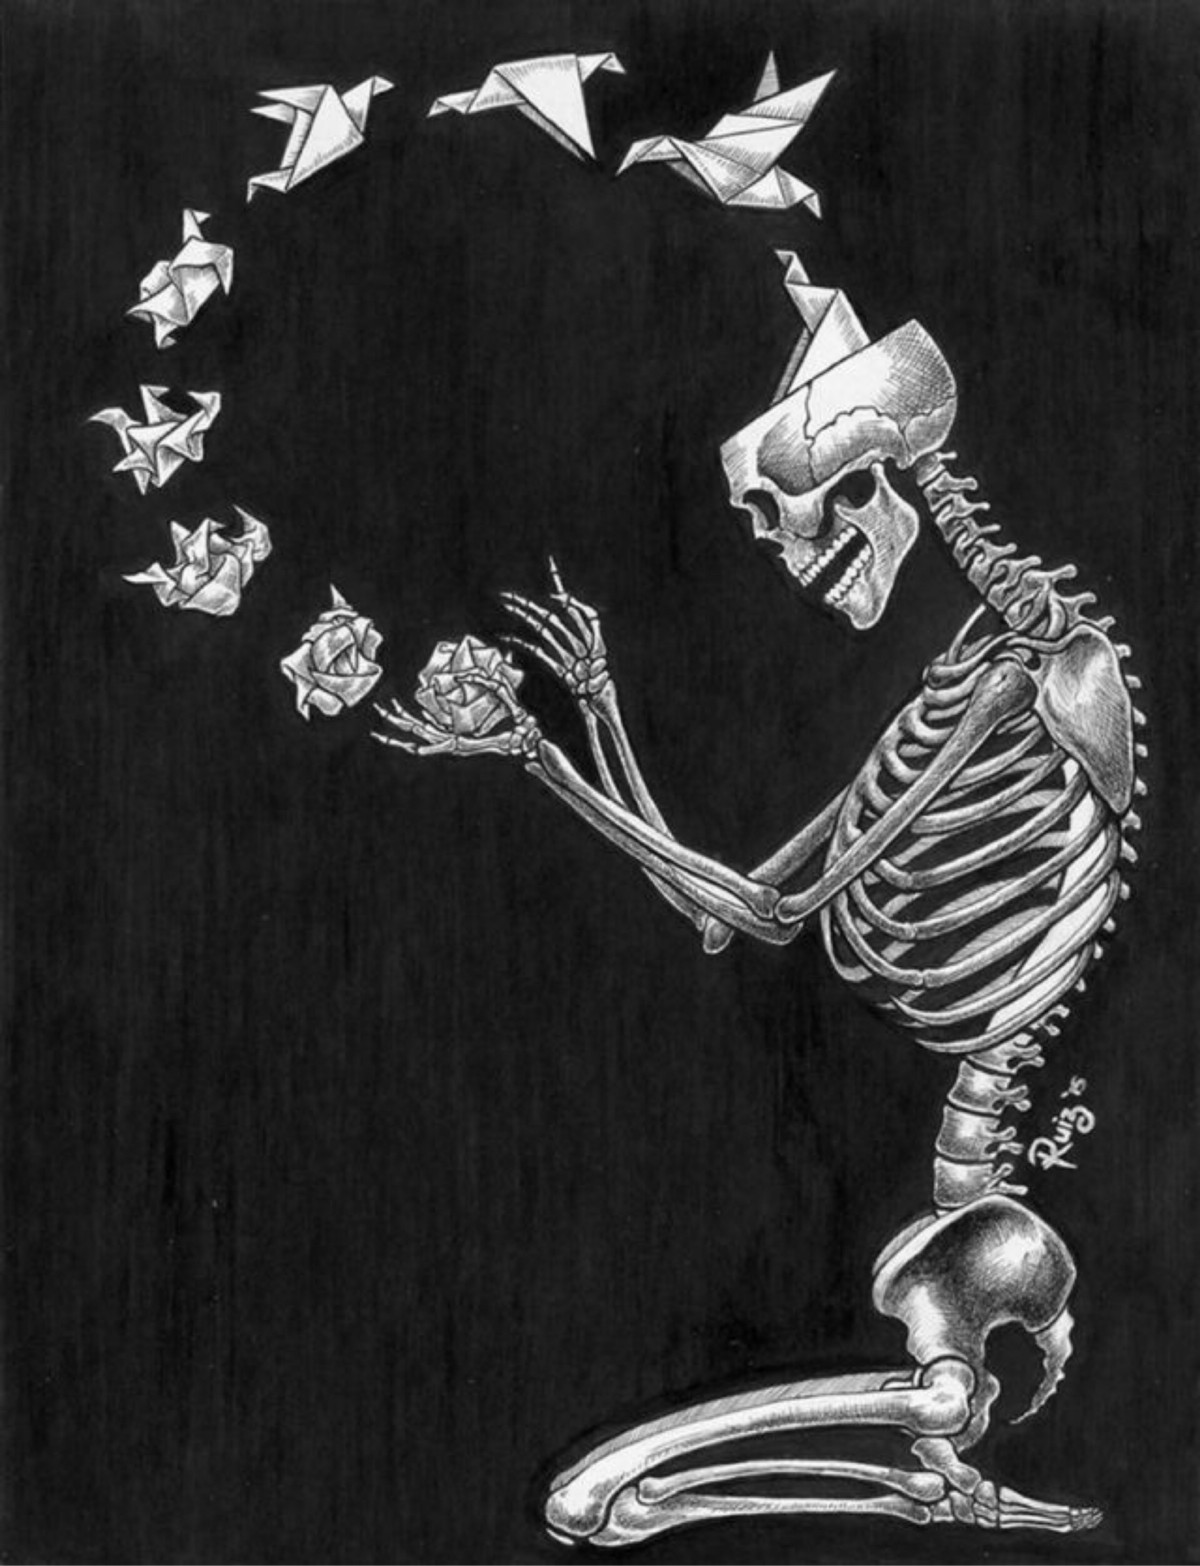 a slimy skeleton artist tumblr - 783×1021